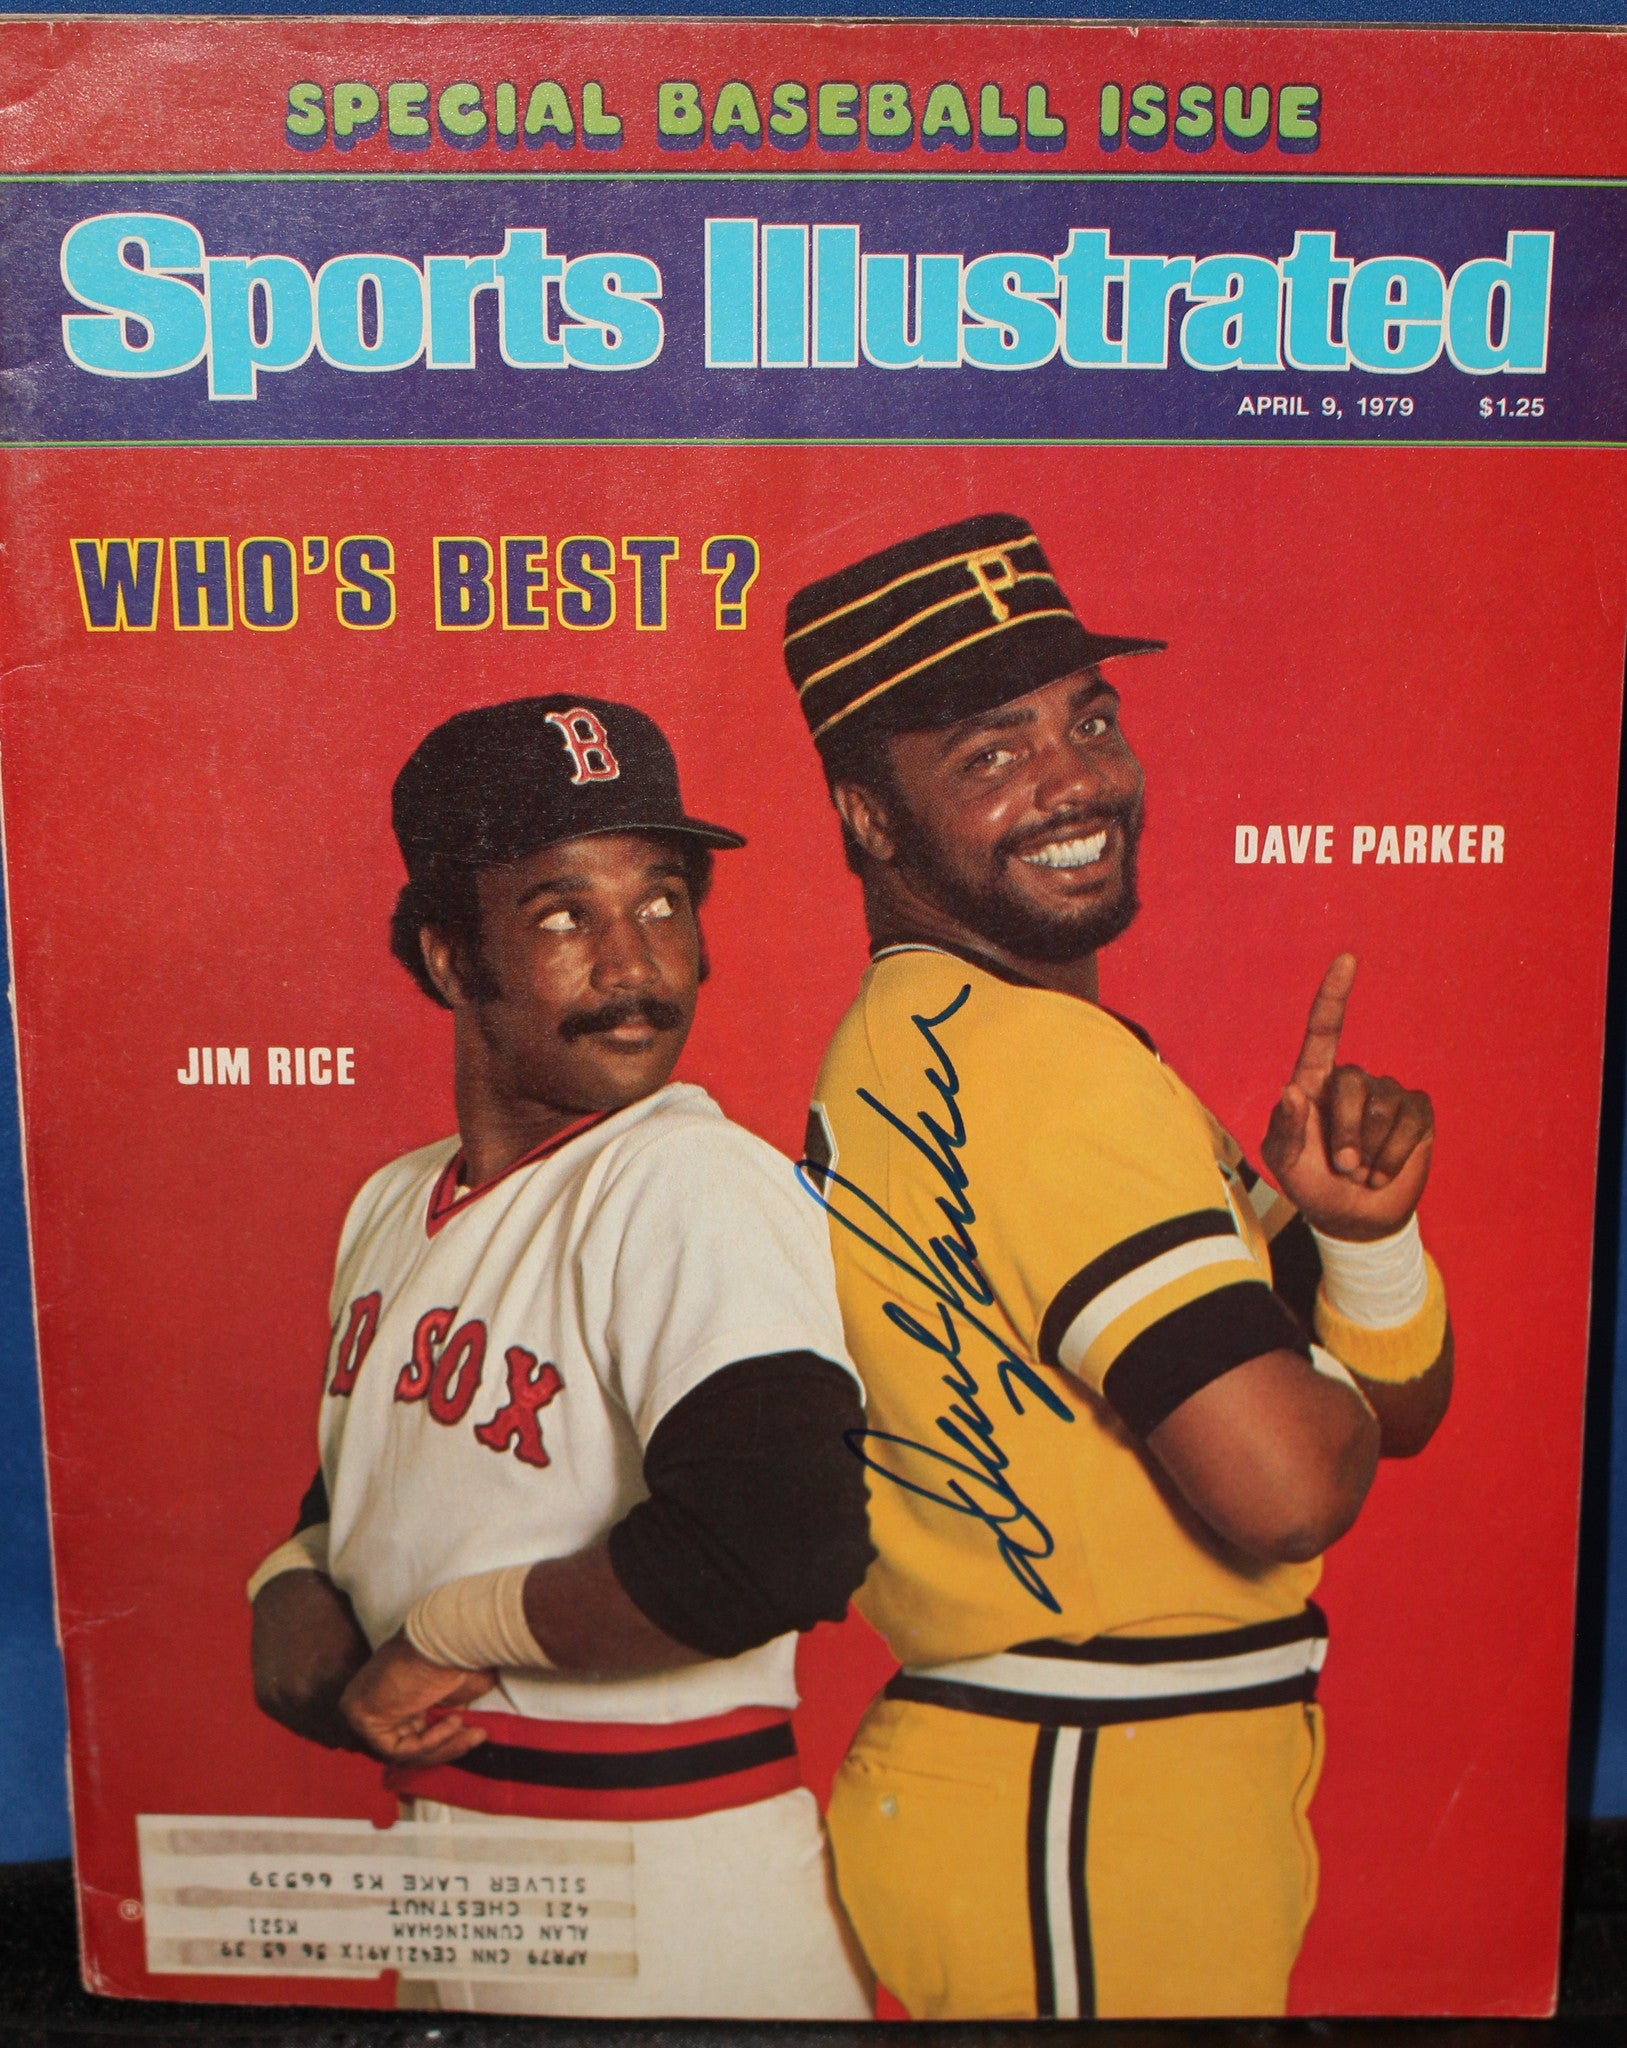 1979 Dave Parker Pittsburgh Pirates Autographed Sports Illustrated Issue - Vintage Indy Sports